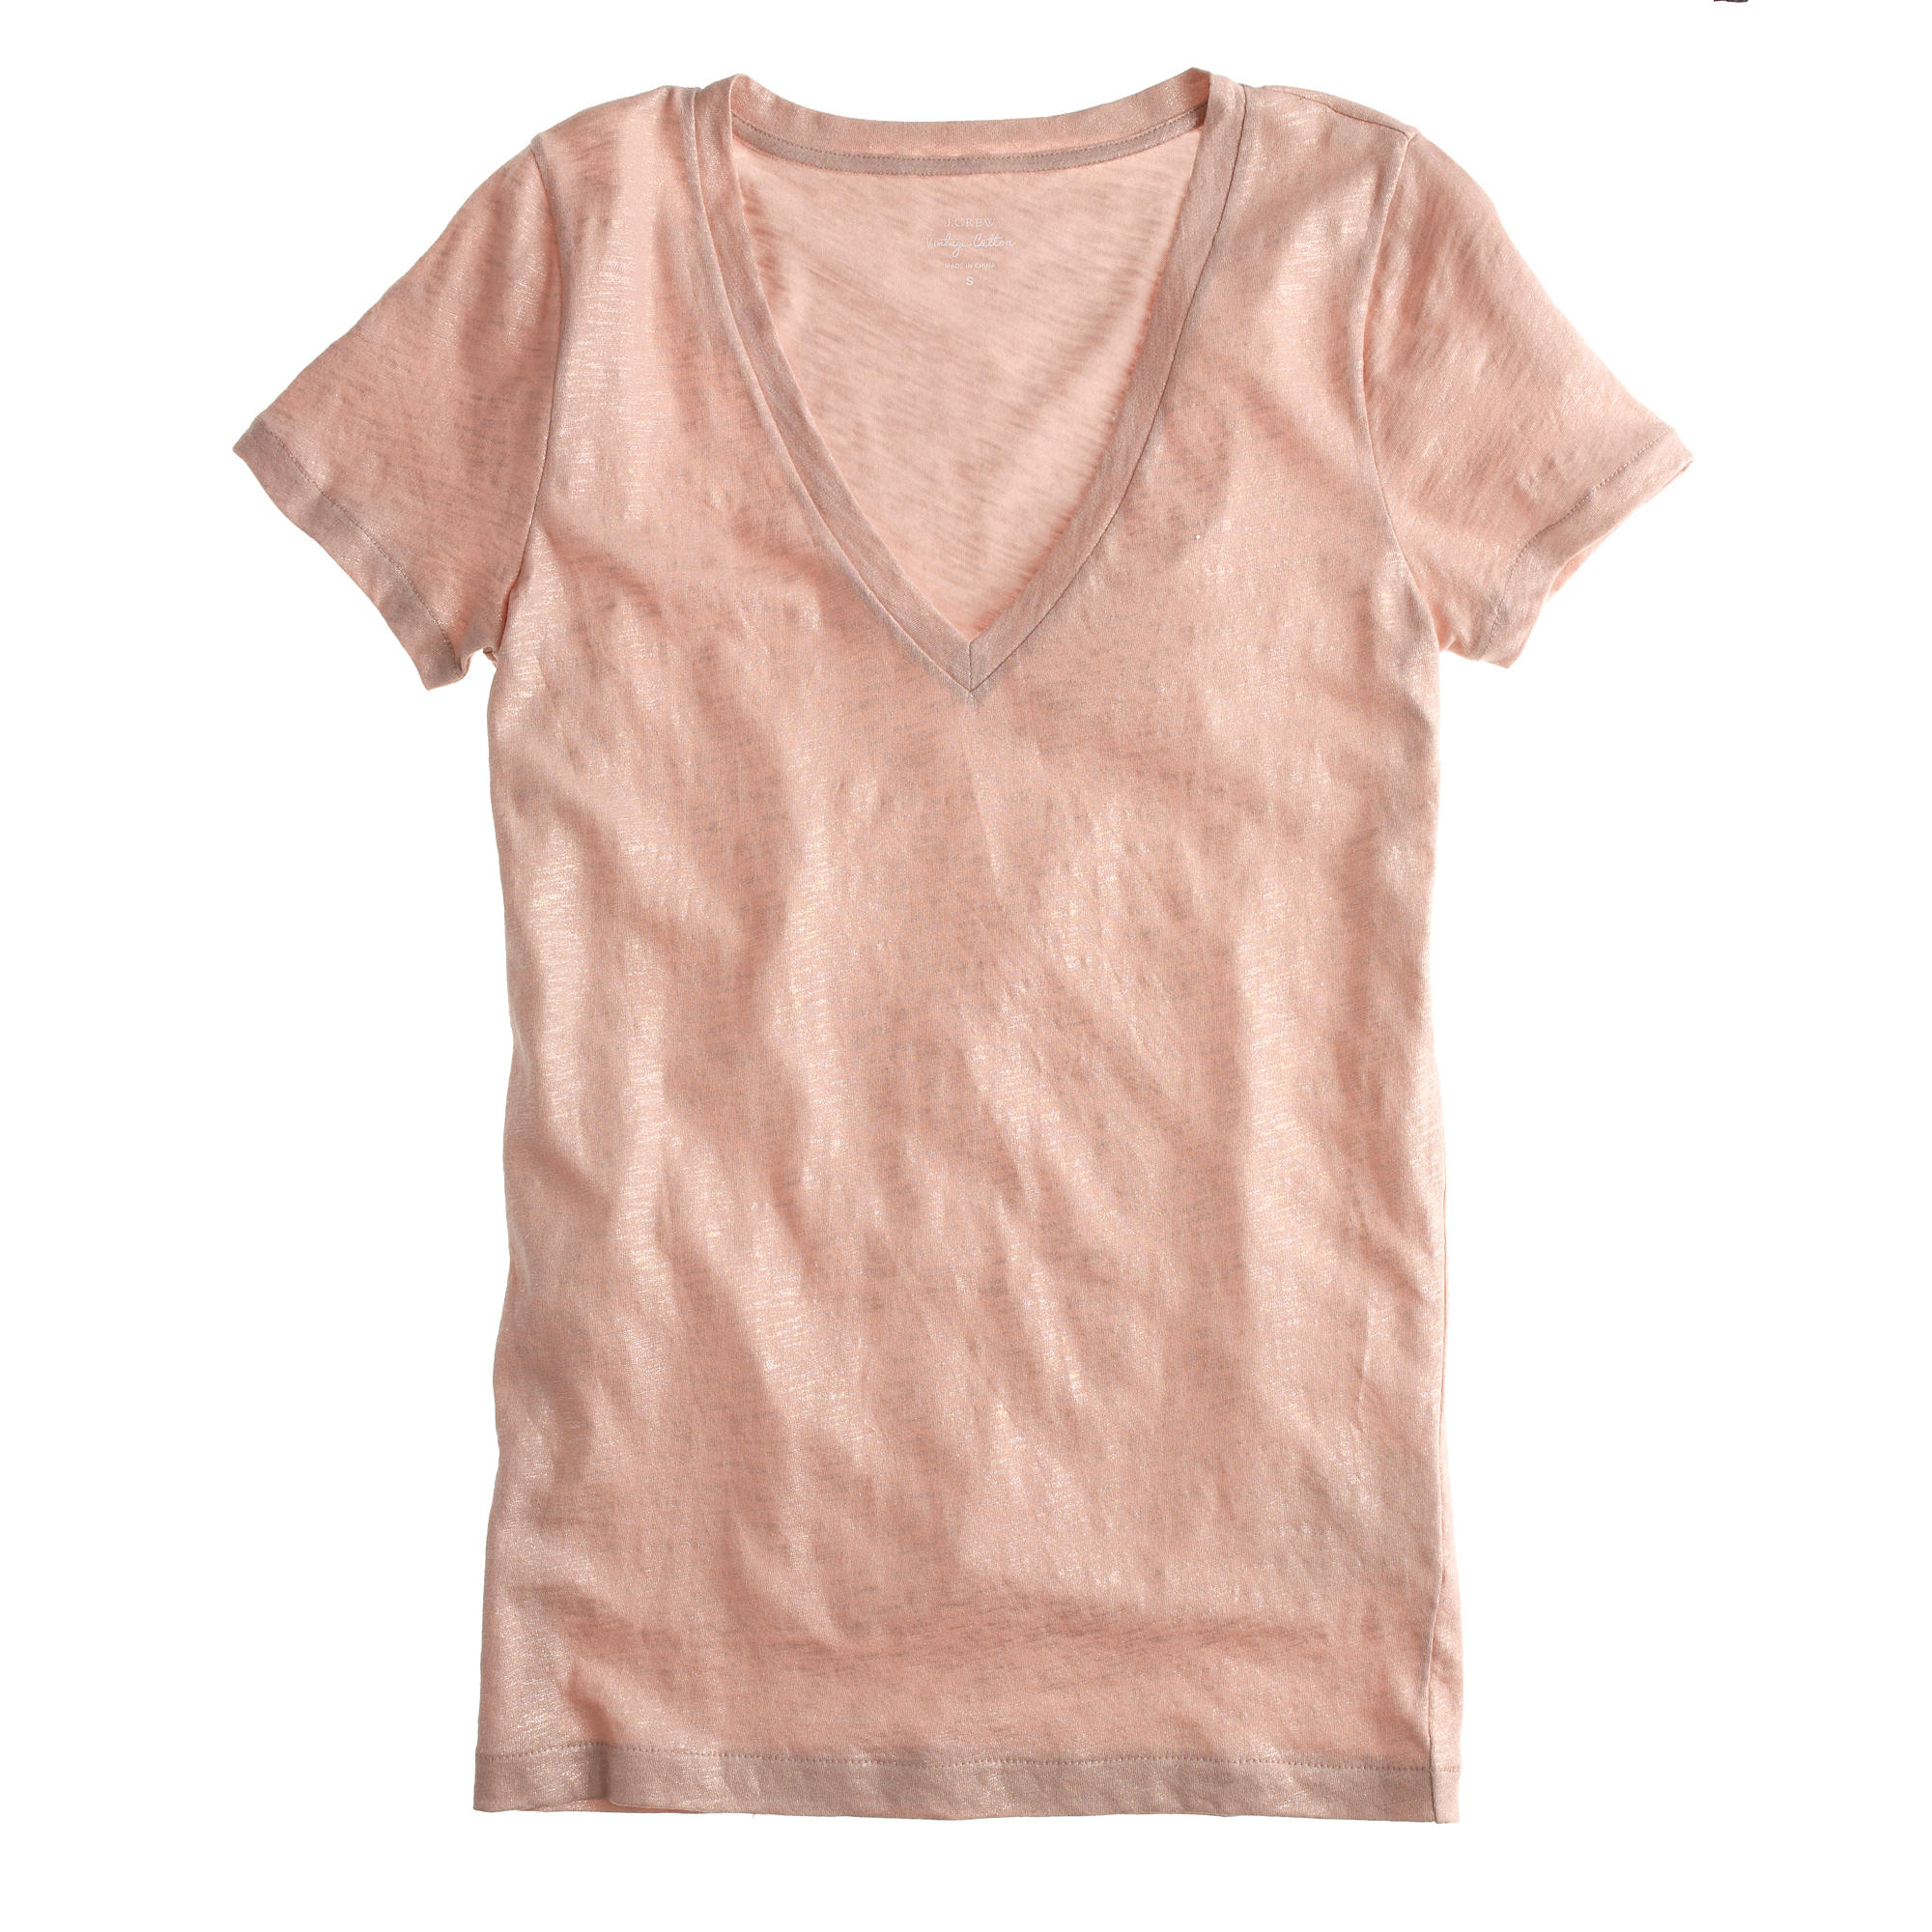 Description: Hanes % Combed Ringspun Cotton Nano T-Shirt. Made with lightweight, oz Ringspun cotton which makes this tee extra soft. (Note: Ash is 99% cotton and 1% polyester, Light Steel is 90% cotton and 10% polyester.